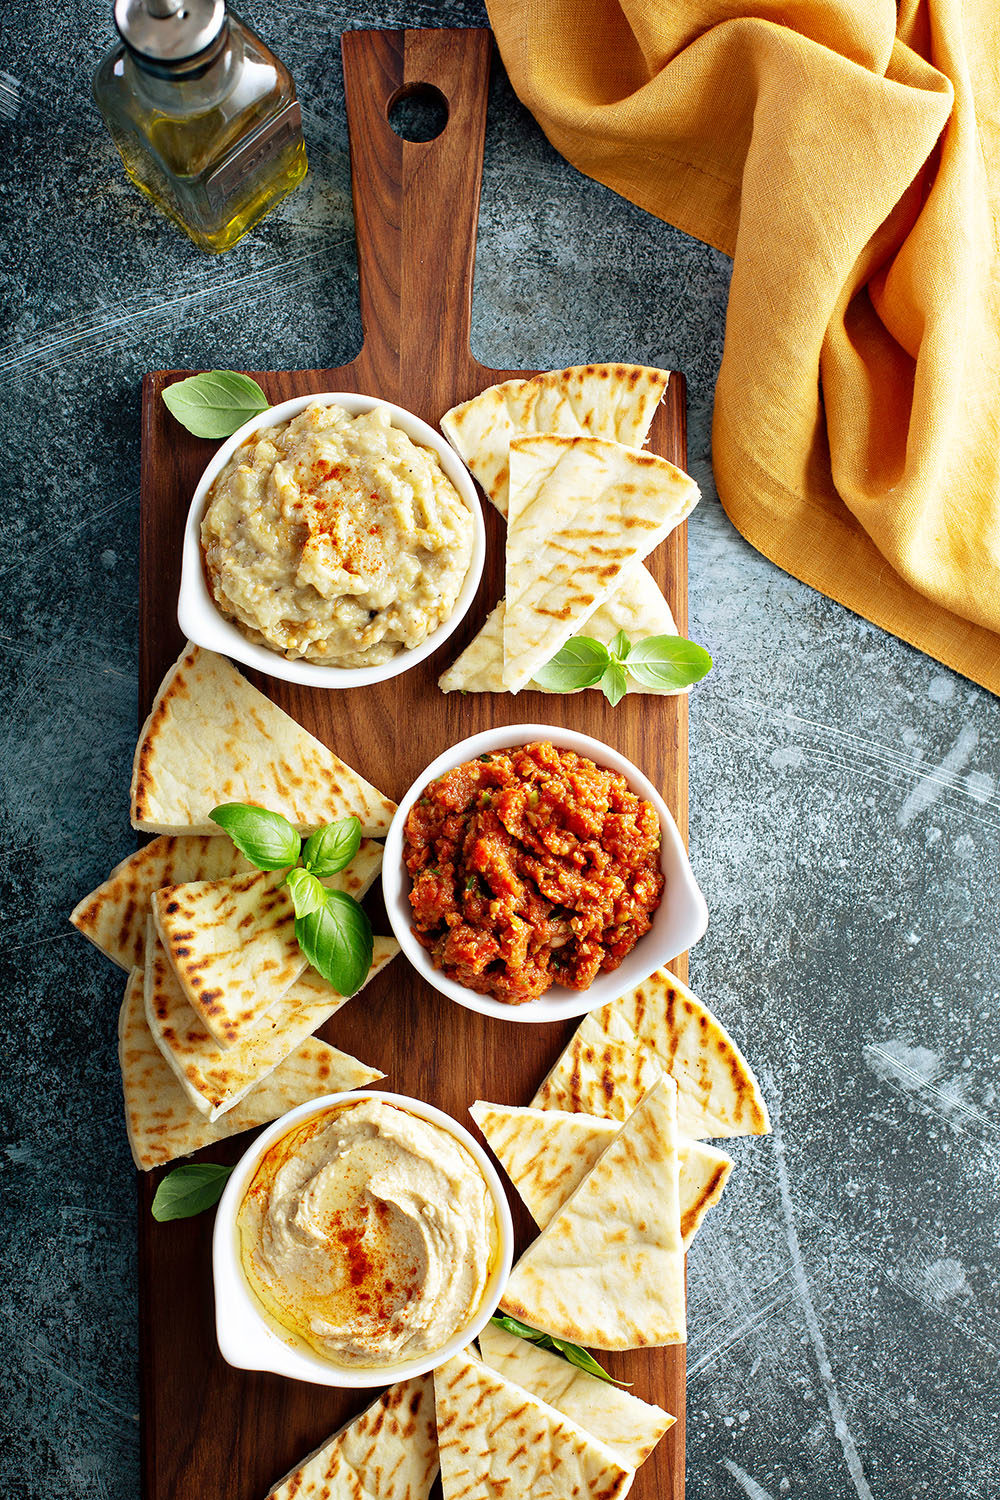 Mediterranean mezze board with pita and dips